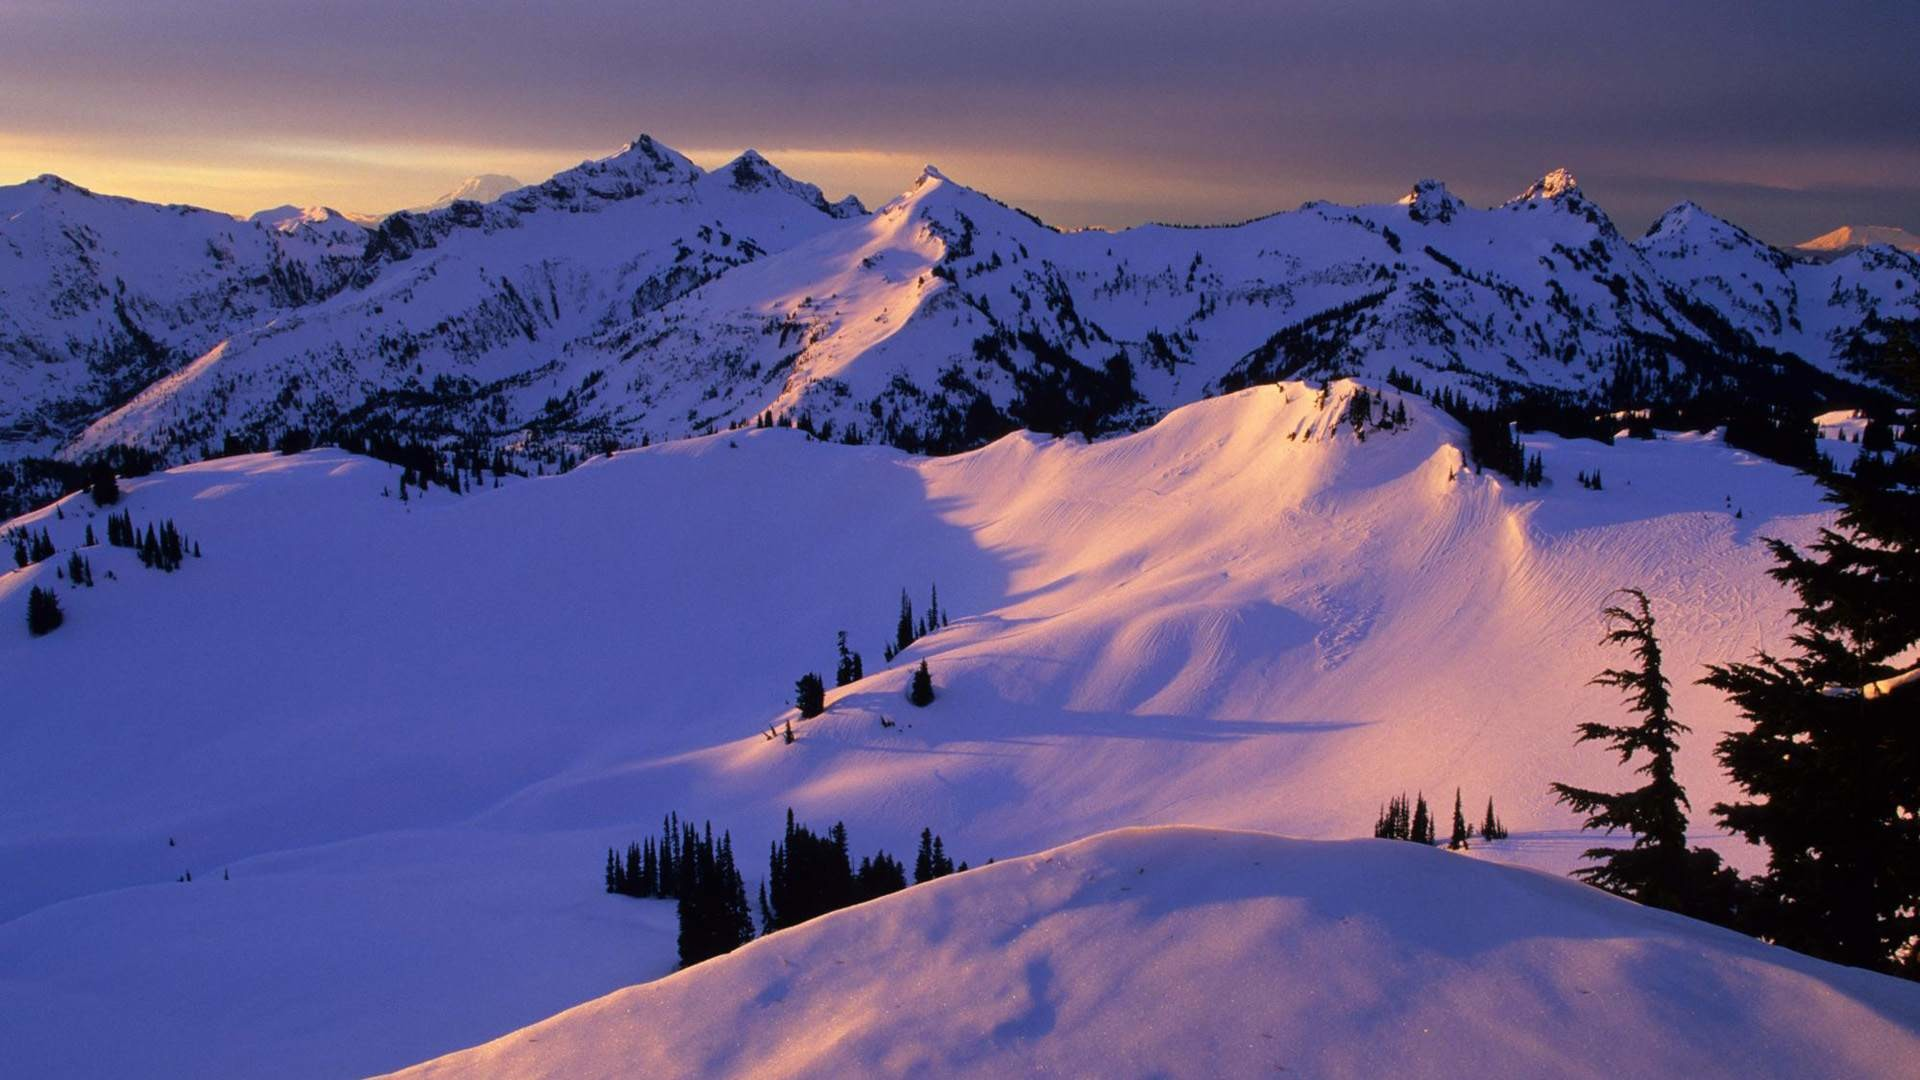 High Resolution Snowy Mountains Wallpapers Mountain Wallpaper Snow 1920x1080 Wallpaper Teahub Io